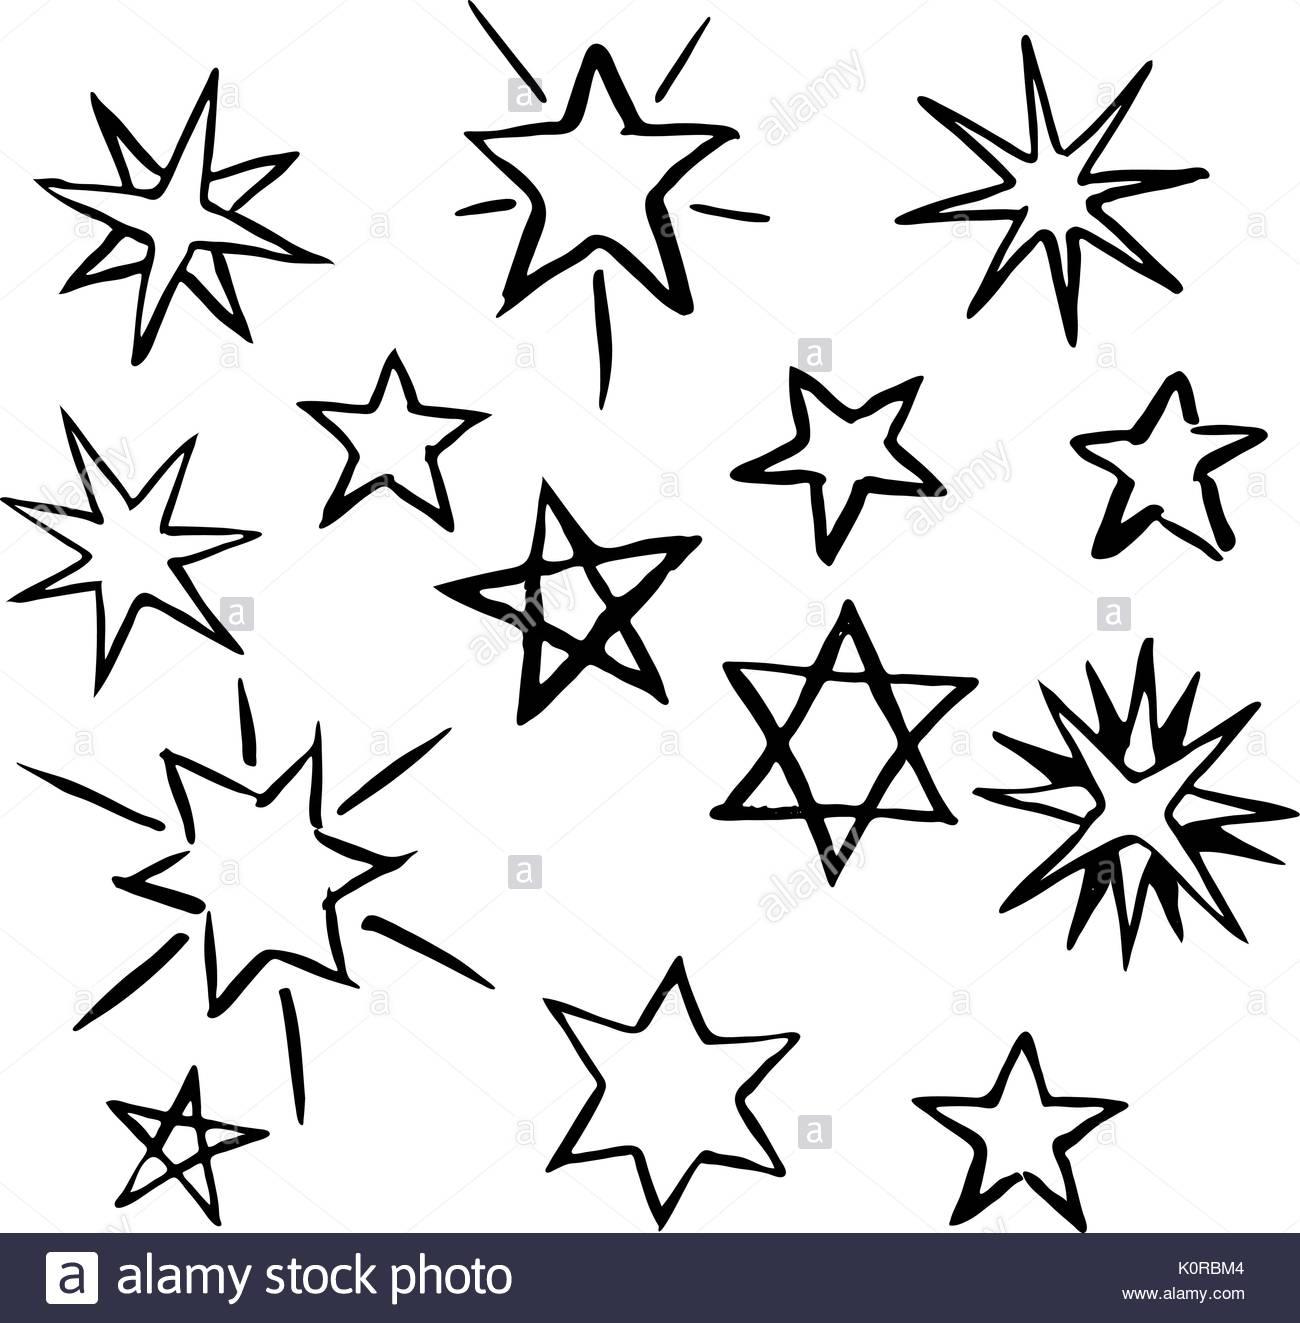 1300x1323 Space Stars Doodle Drawing Image Stock Photos Amp Space Stars Doodle